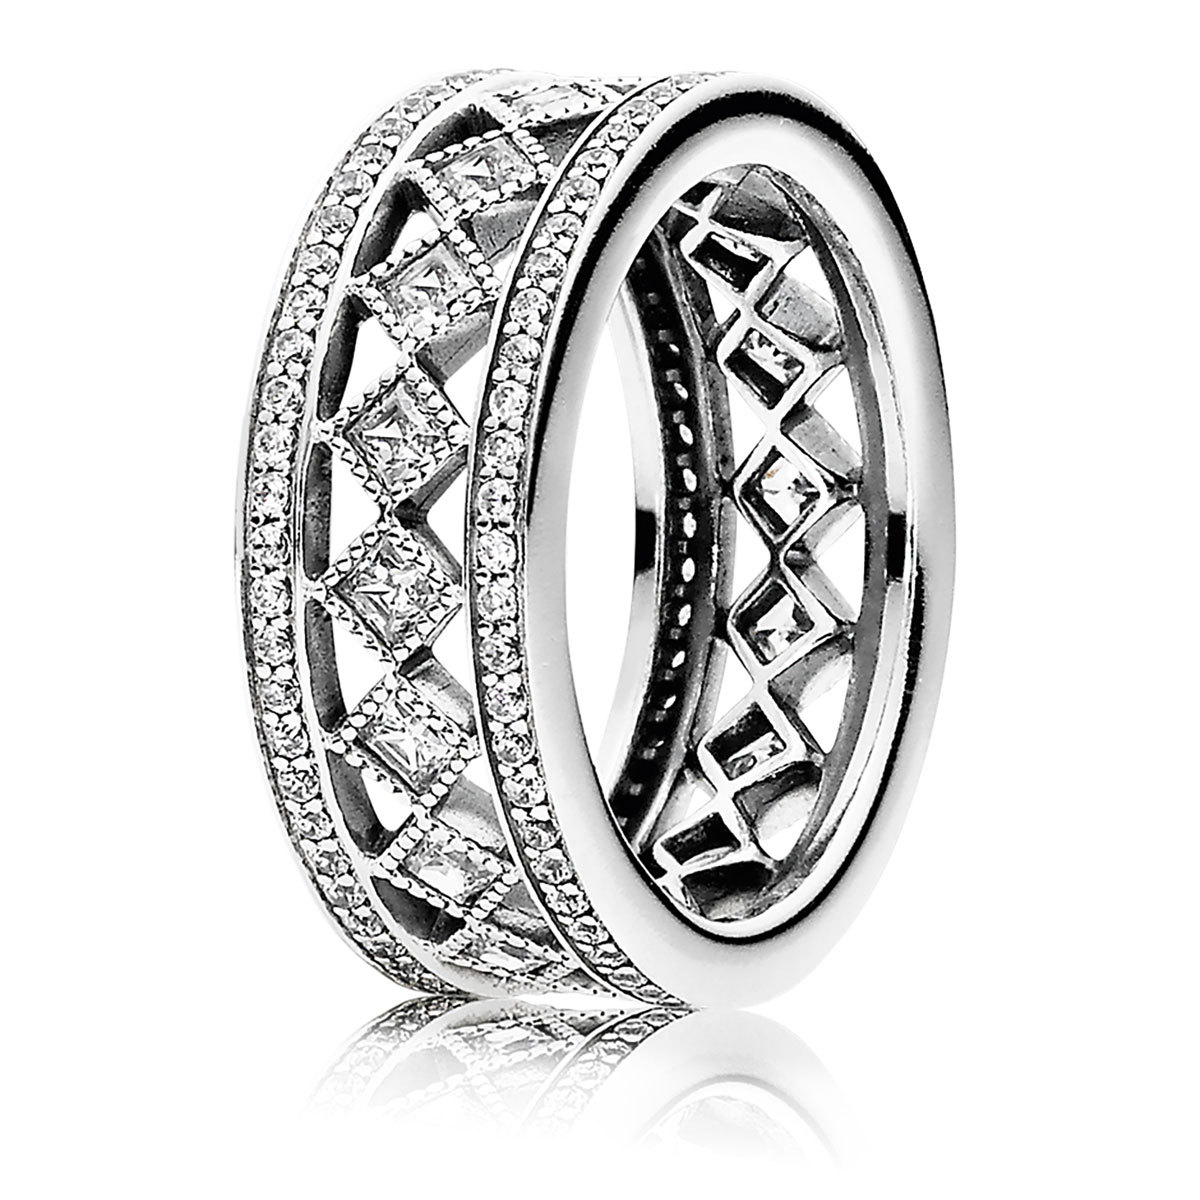 Primary image for 925 Sterling Silver Vintage Fascination with Clear CZ Ring For Women QJCB1021